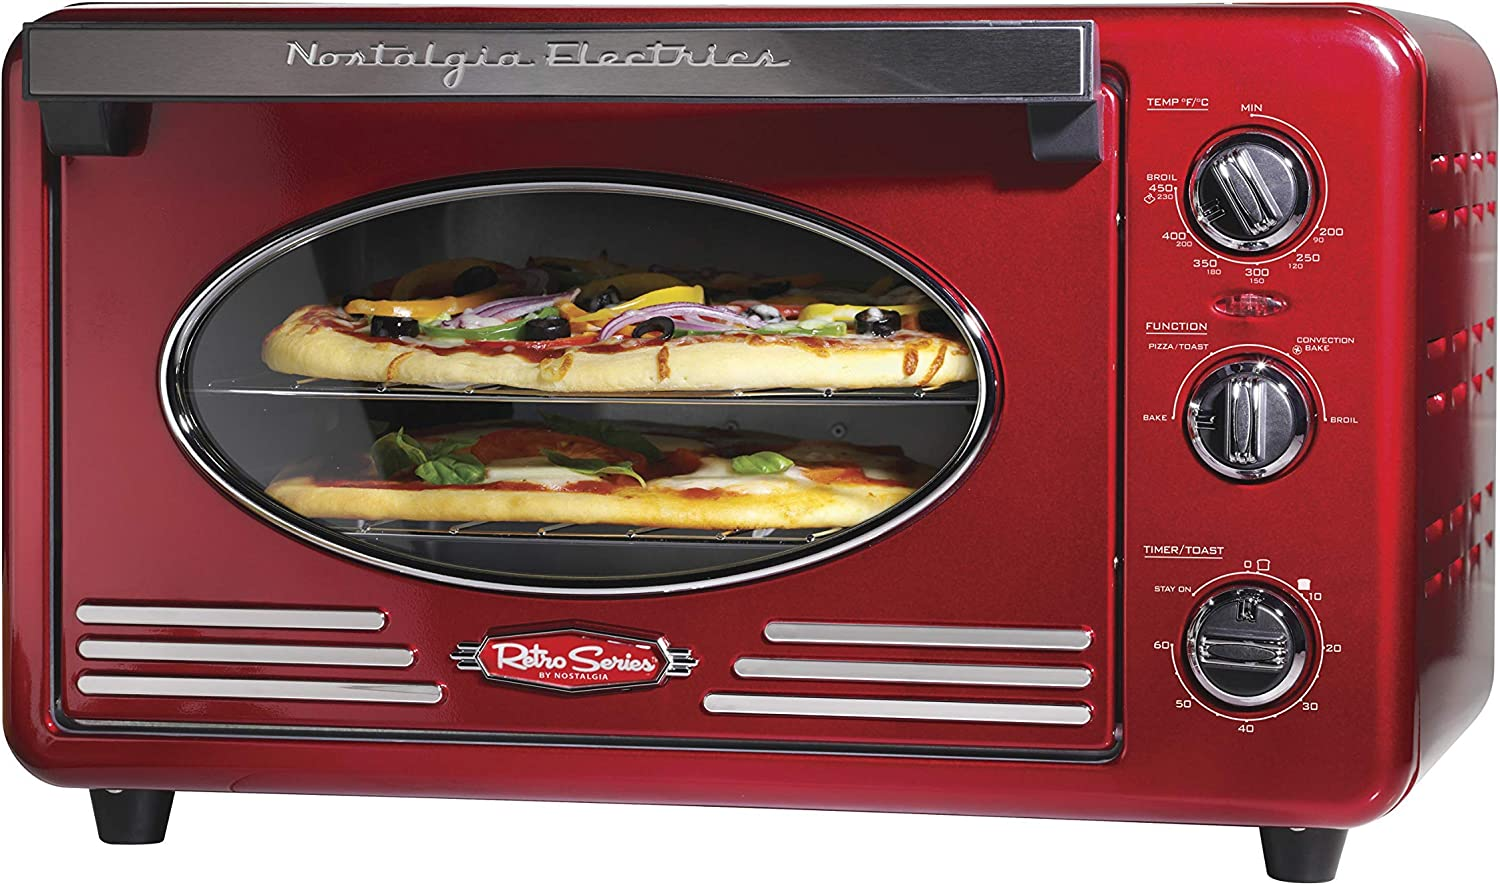 Nostalgia RTOV2RR Large-Capacity 0.7-Cu. Ft. Capacity Multi-Functioning Retro Convection Toaster Oven, Fits 12 Slices of Bread and Two 12-Inch Pizzas, Built In Timer, Includes Baking Pan,Metallic Red (Renewed)